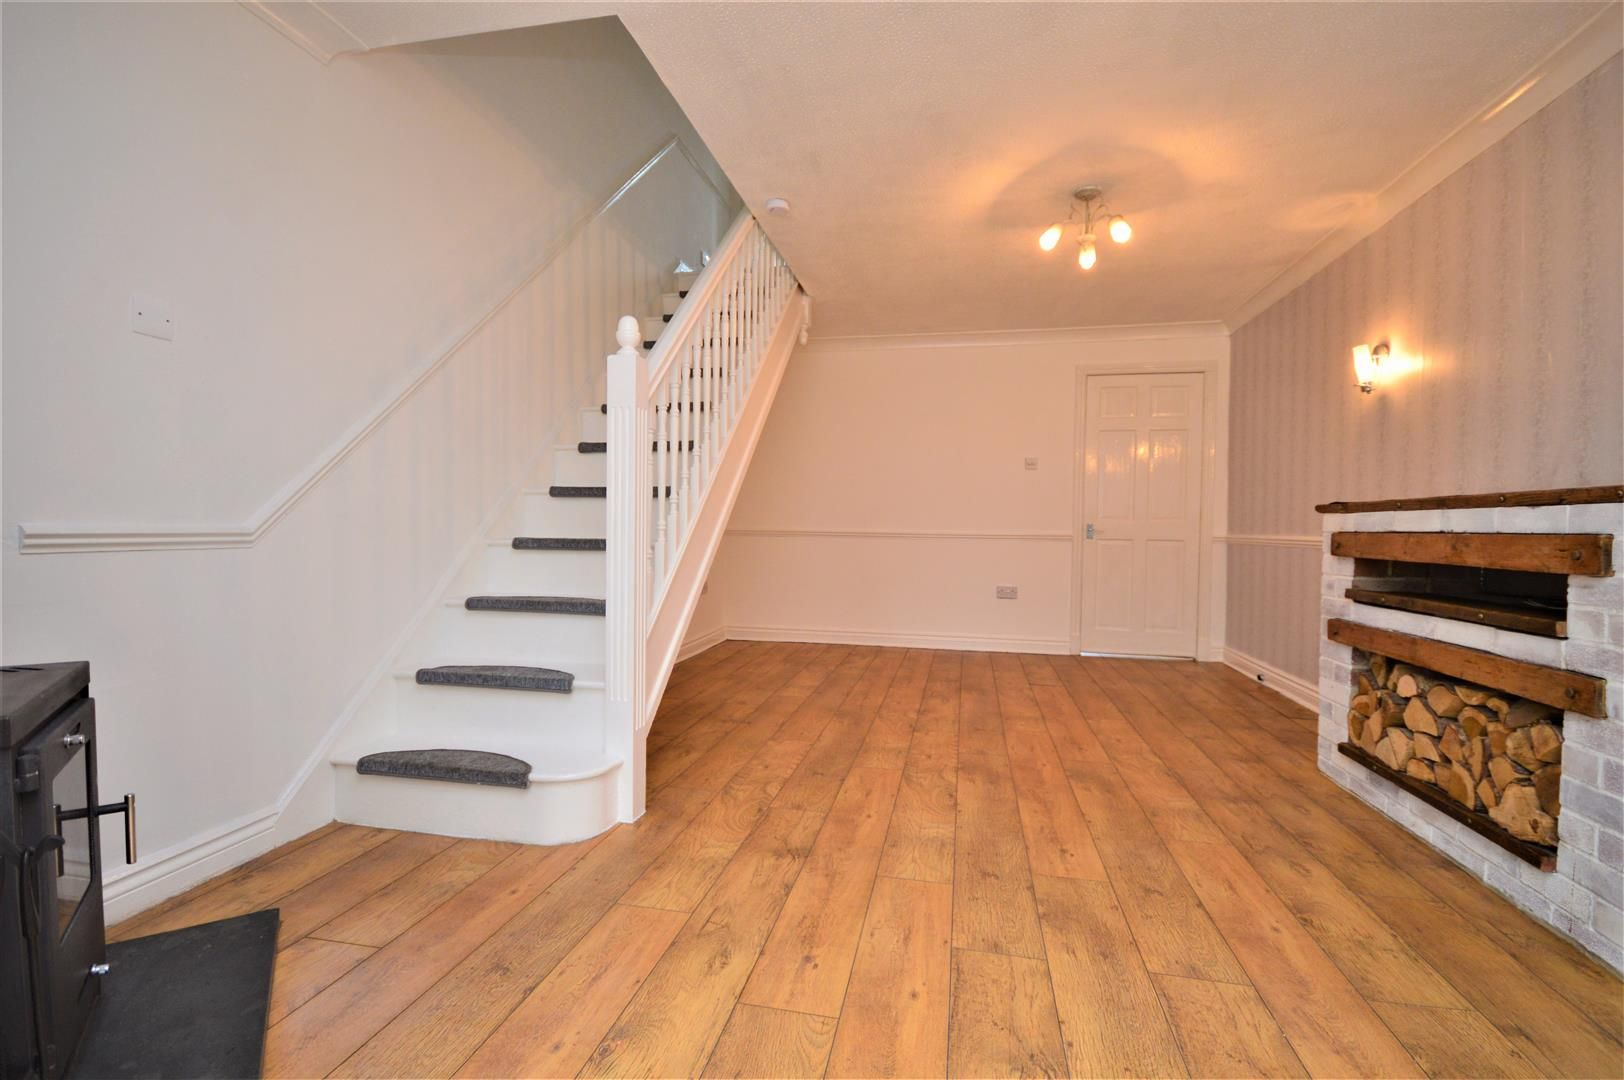 2 bed end-of-terrace for sale in Belmont  - Property Image 3